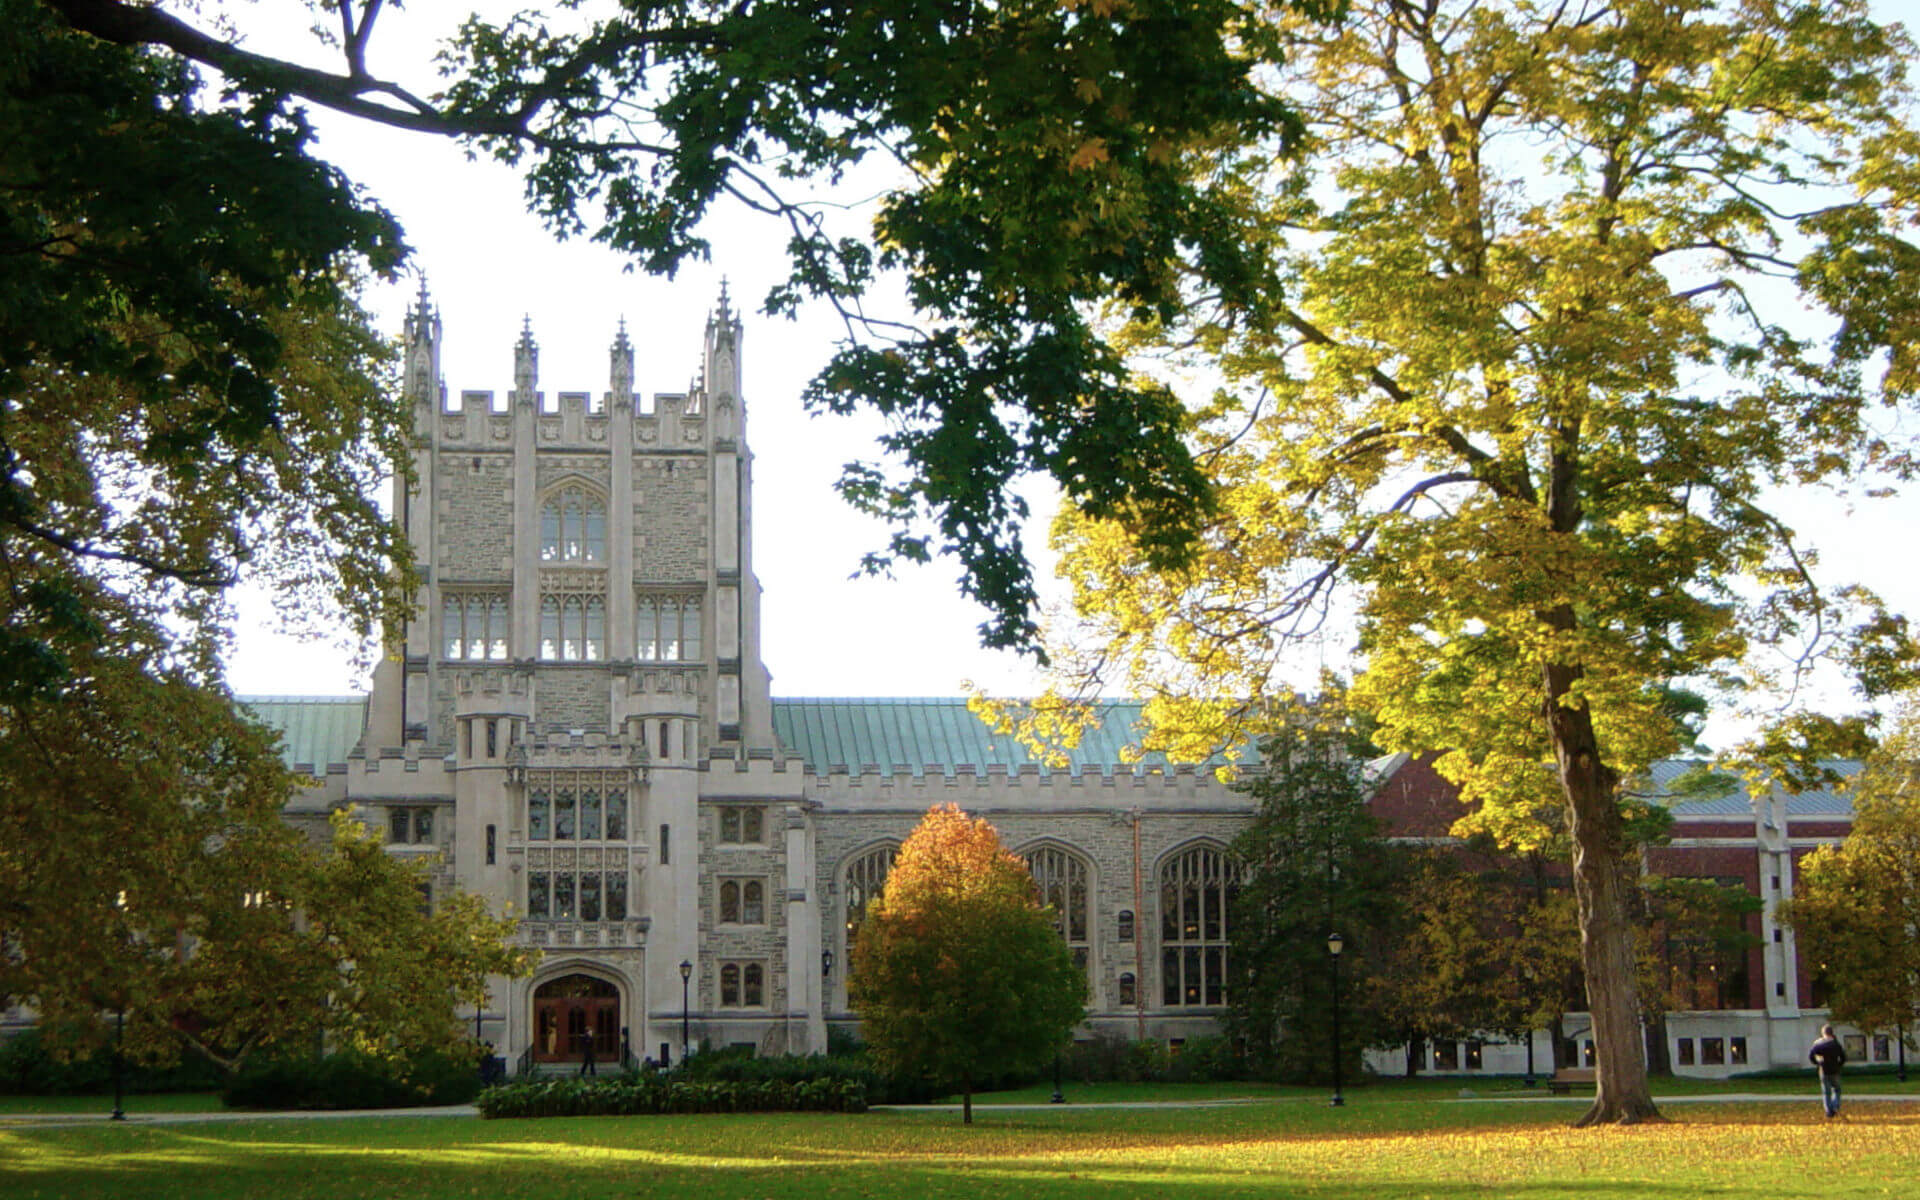 Art Colleges In New York >> 30 Best Liberal Arts Colleges In The Northeast Ranked By